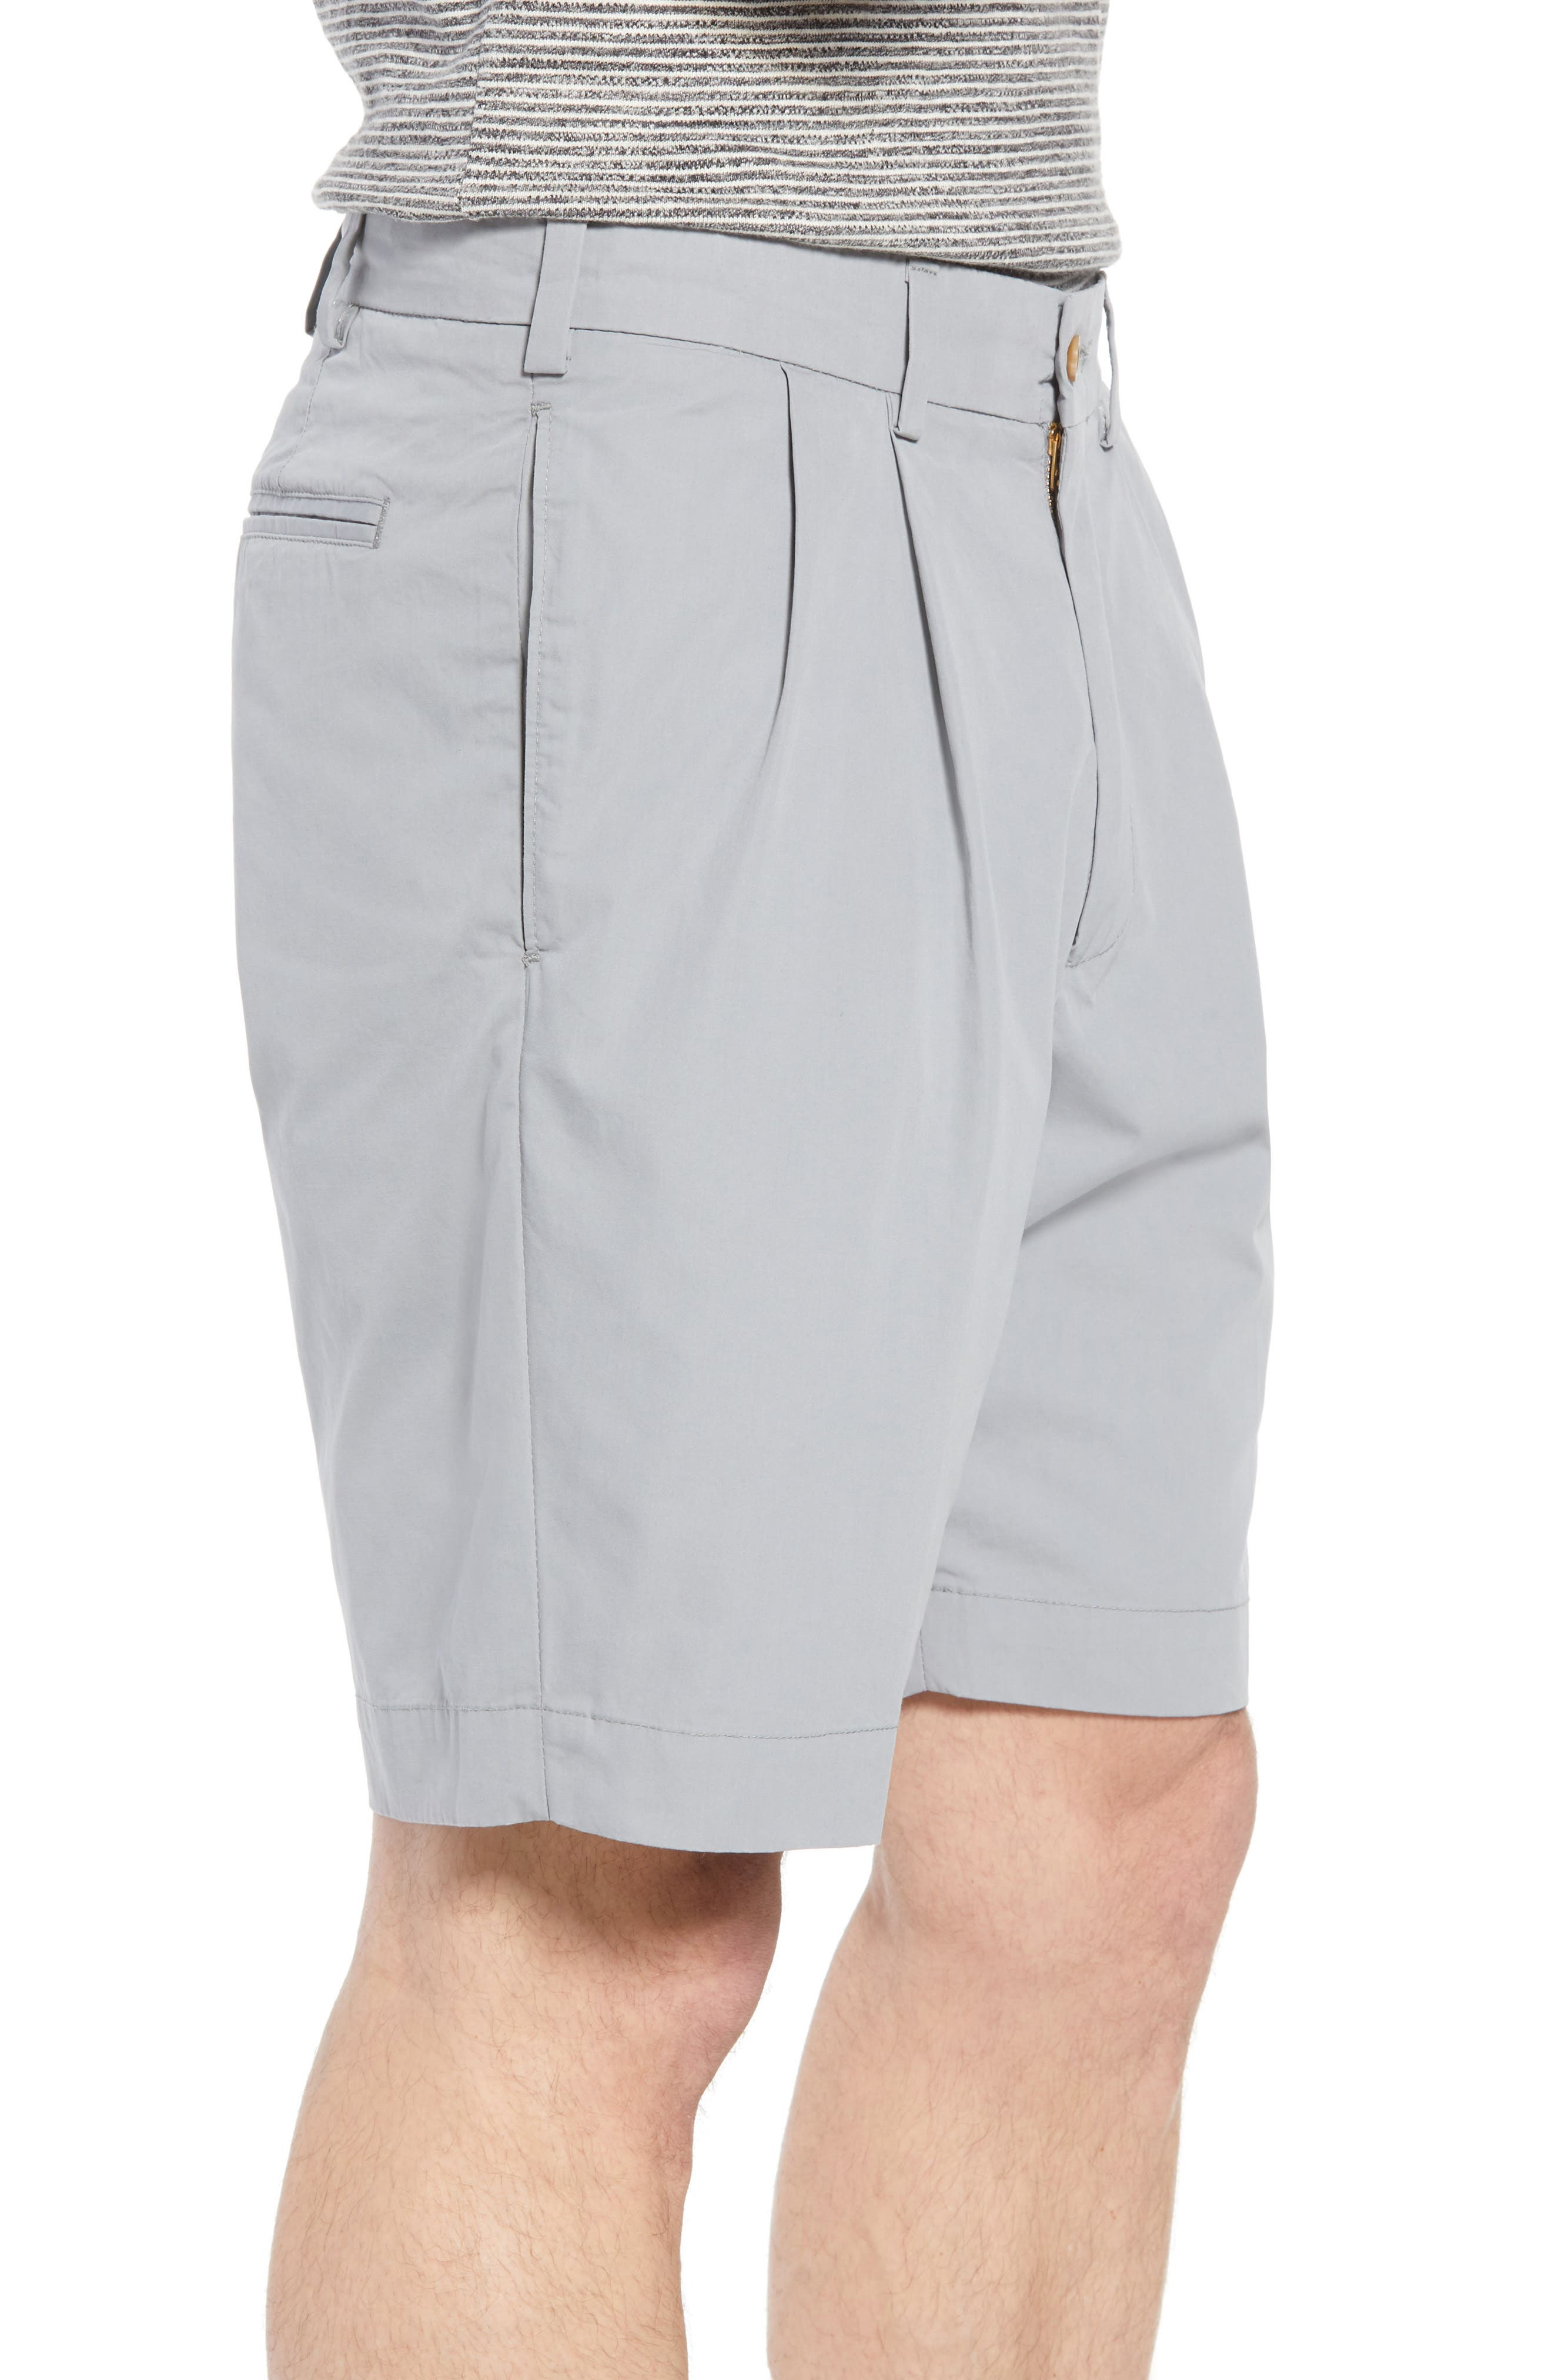 M2 Classic Fit Pleated Tropical Cotton Poplin Shorts,                             Alternate thumbnail 3, color,                             Nickel